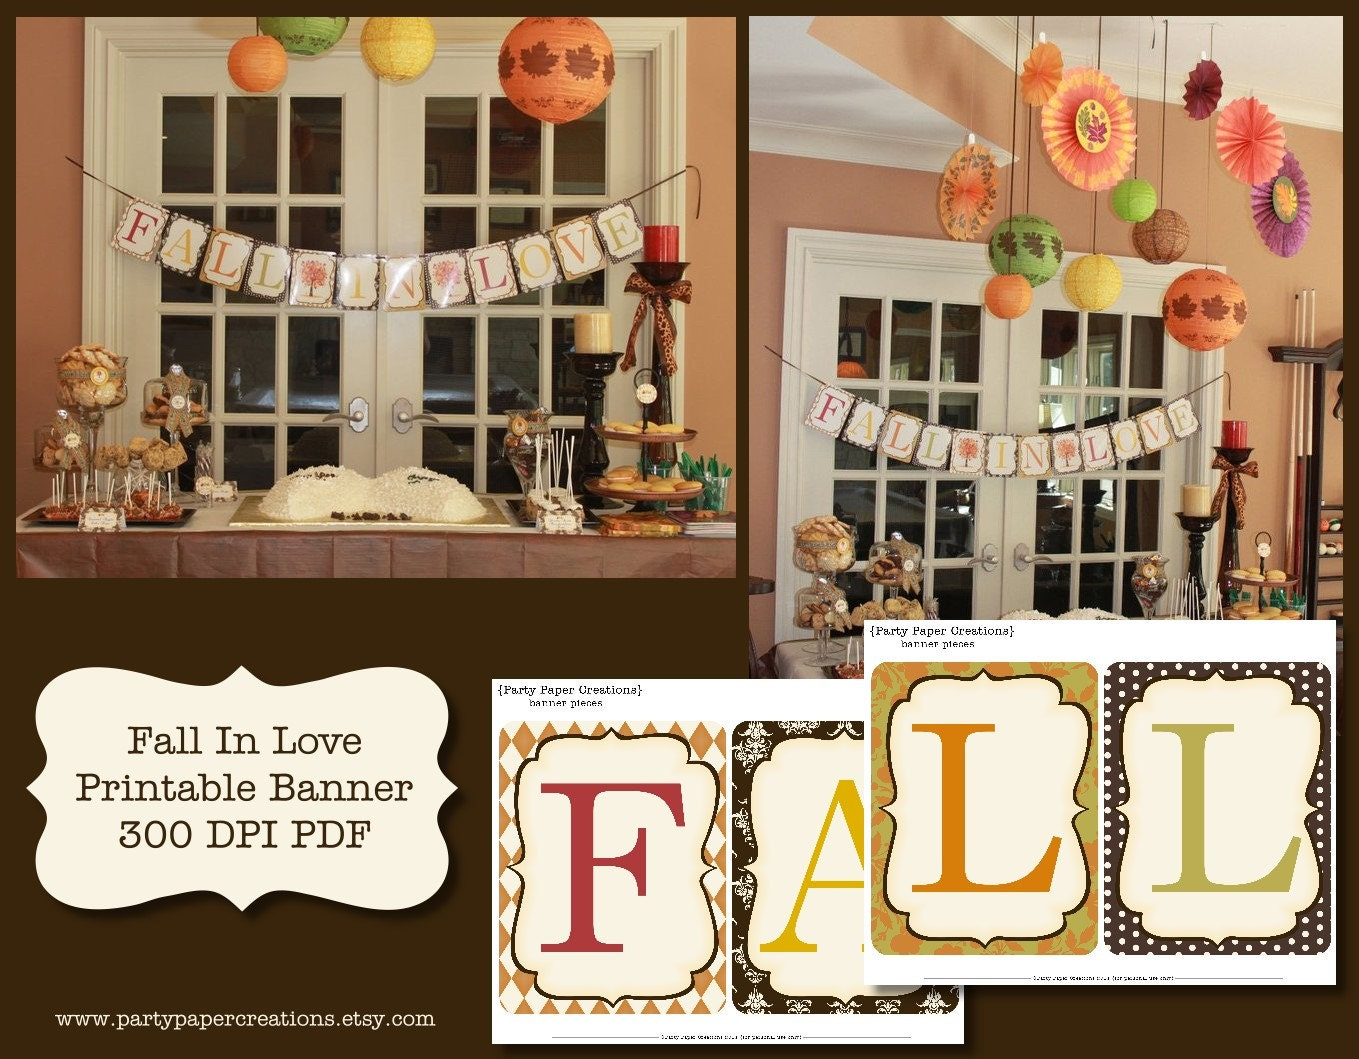 Fall in love bridal shower or wedding printable banner pdf zoom junglespirit Choice Image